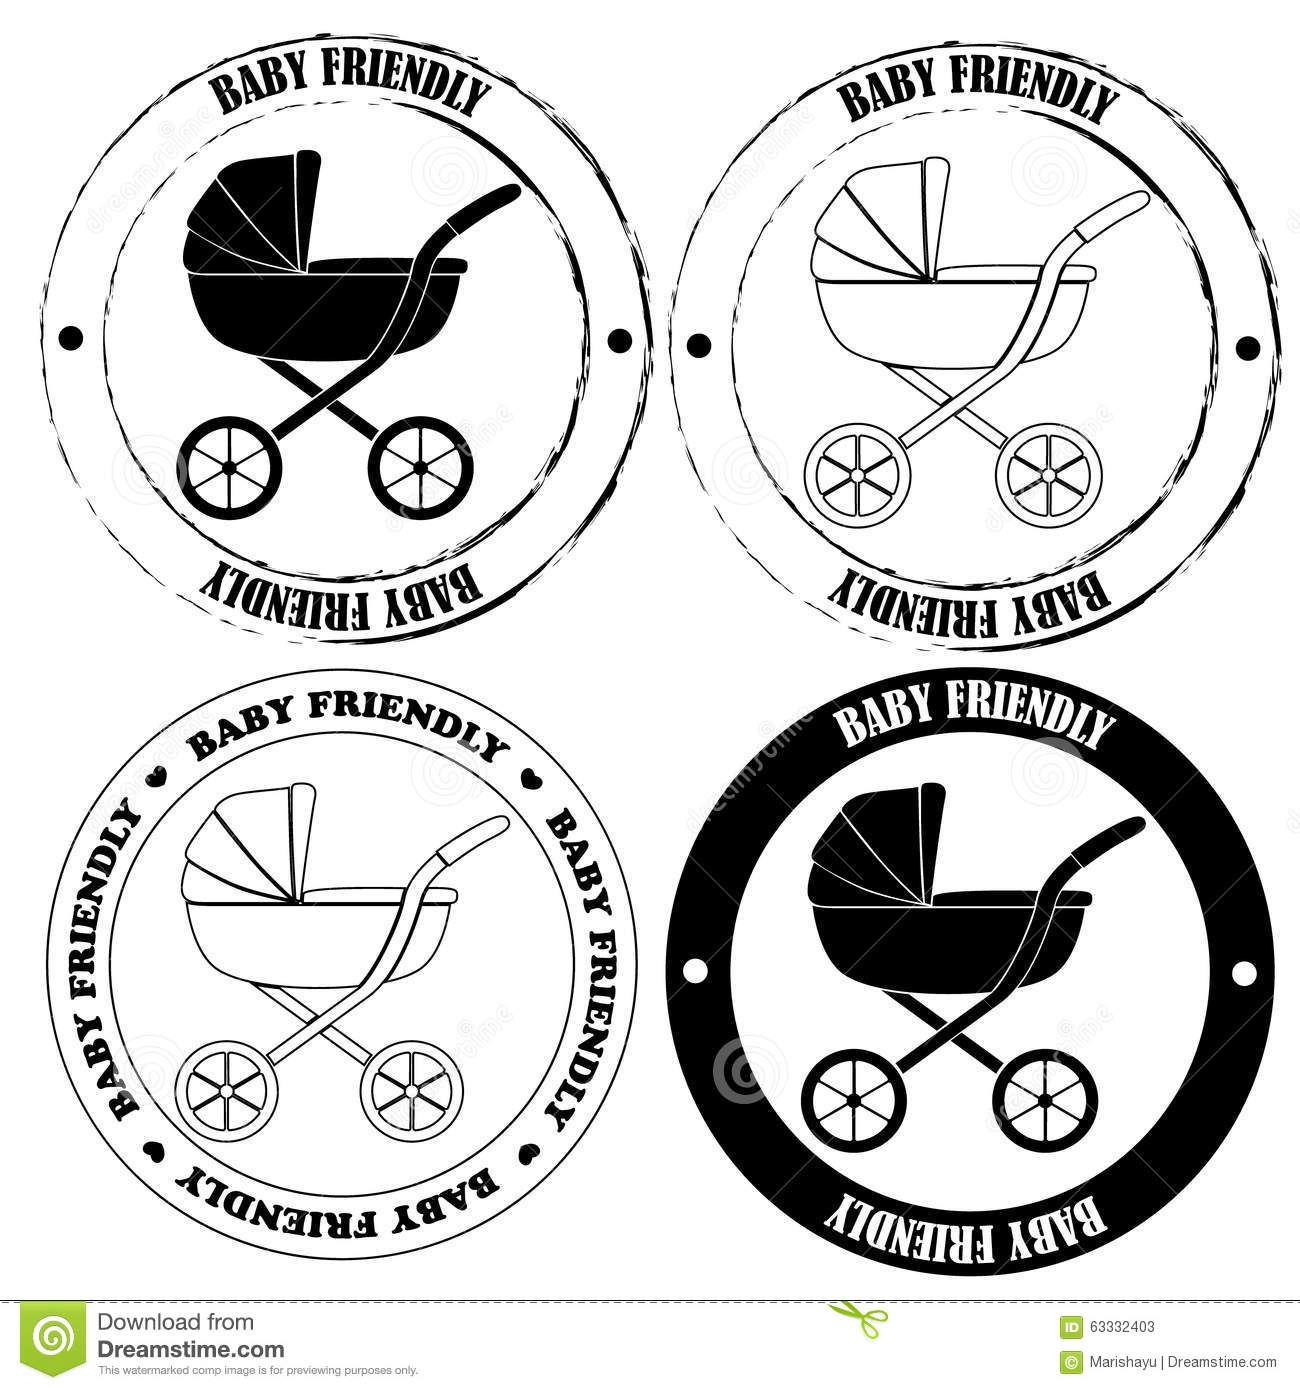 Baby Friendly Stamps Black And White Stock Vector